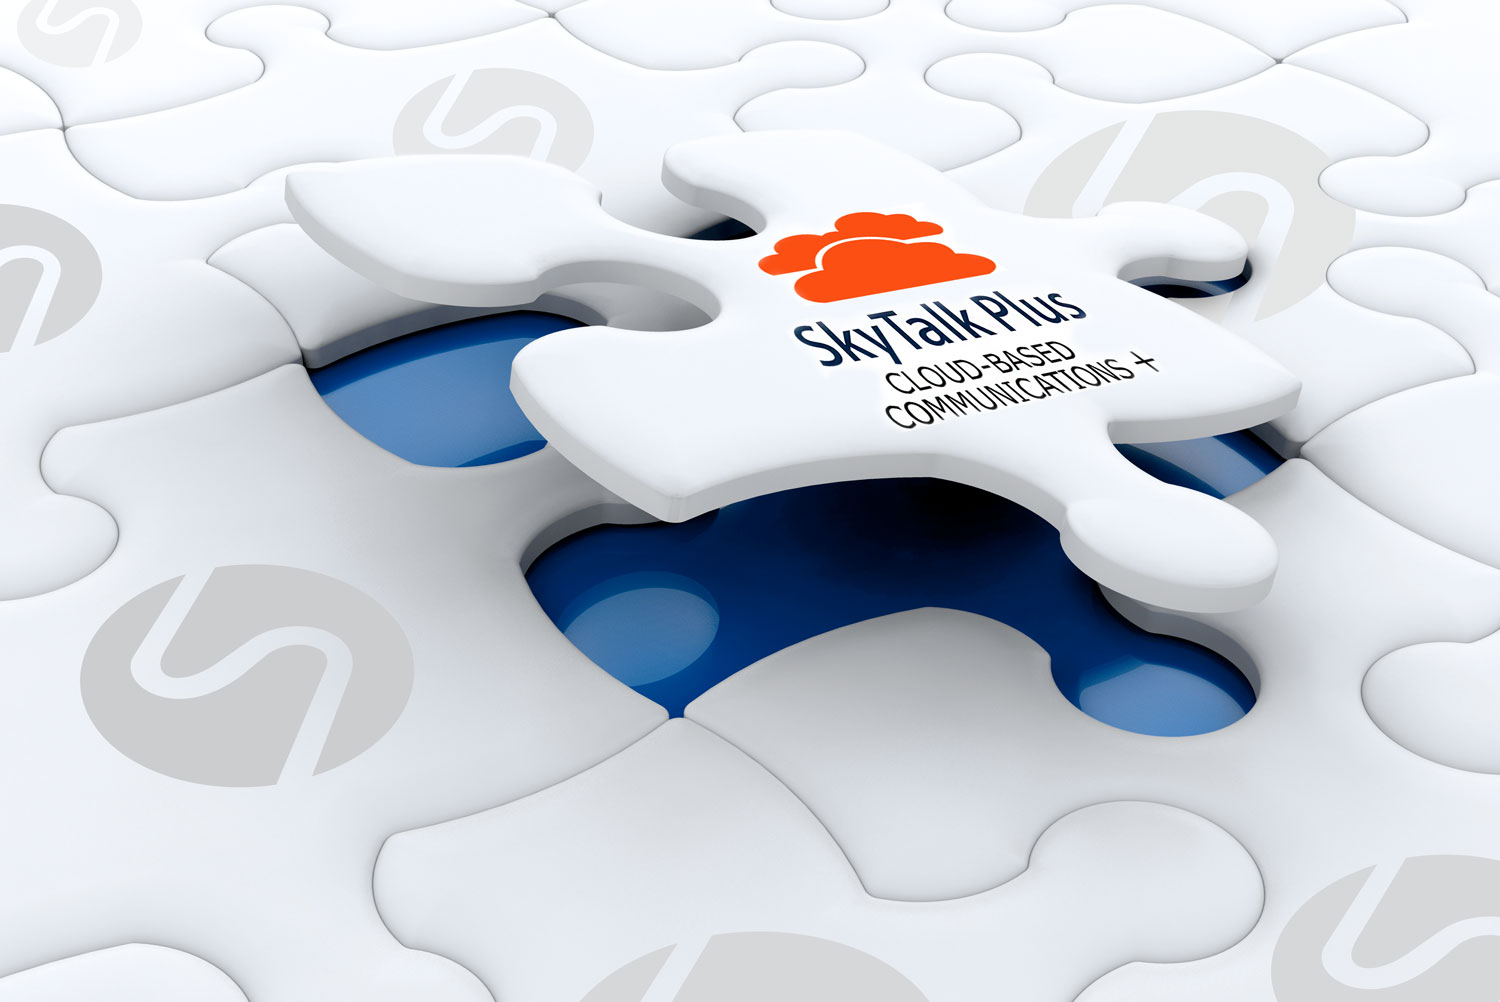 S-NET Communications Acquired SkyTalk